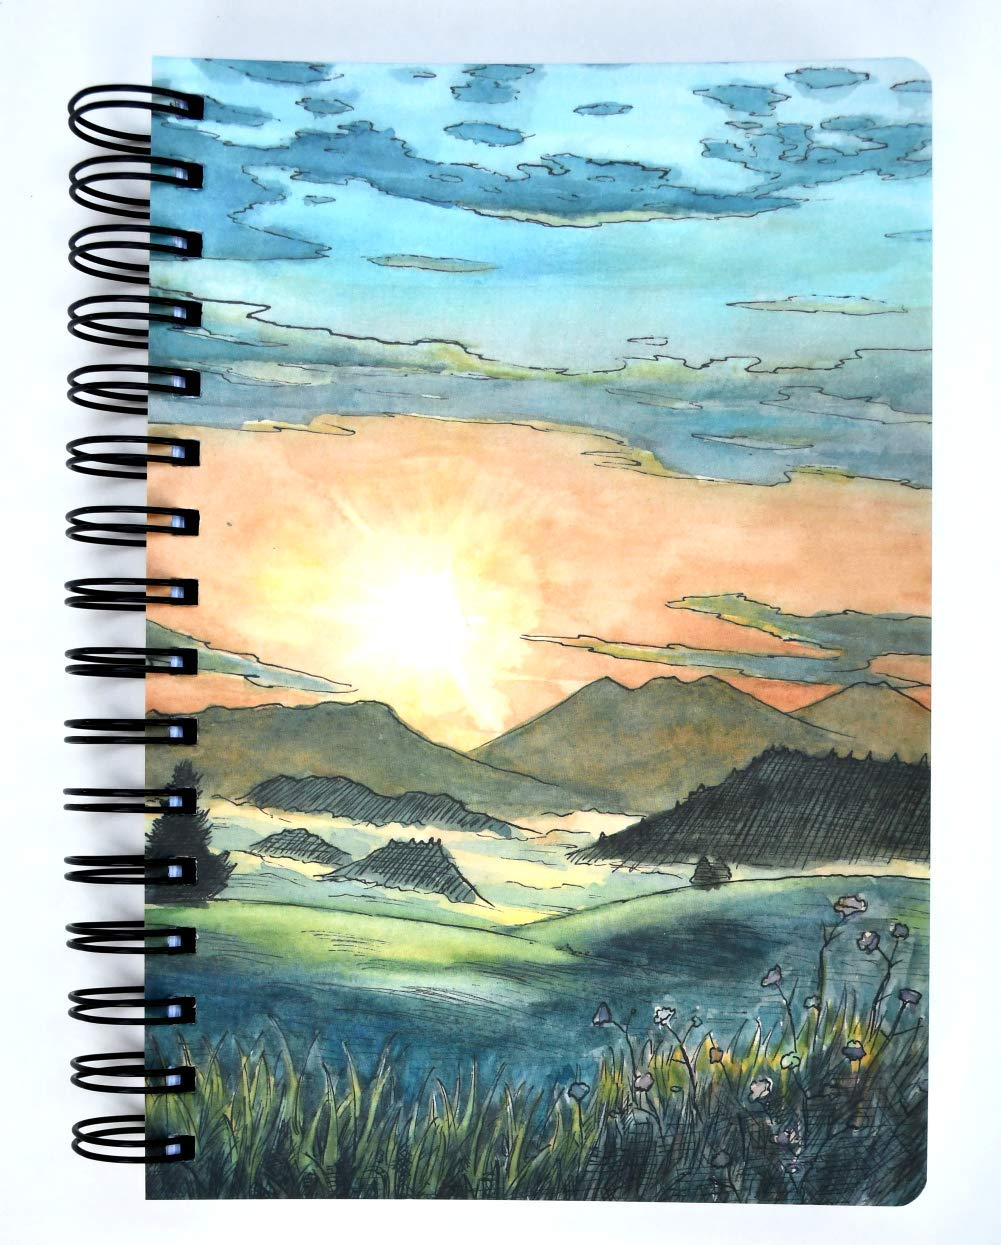 Sunrise Spiral Diary Notebook Planner by SohoSpark, Writing Journal, Designer Cover, 366 Lined Pages, Lays Flat